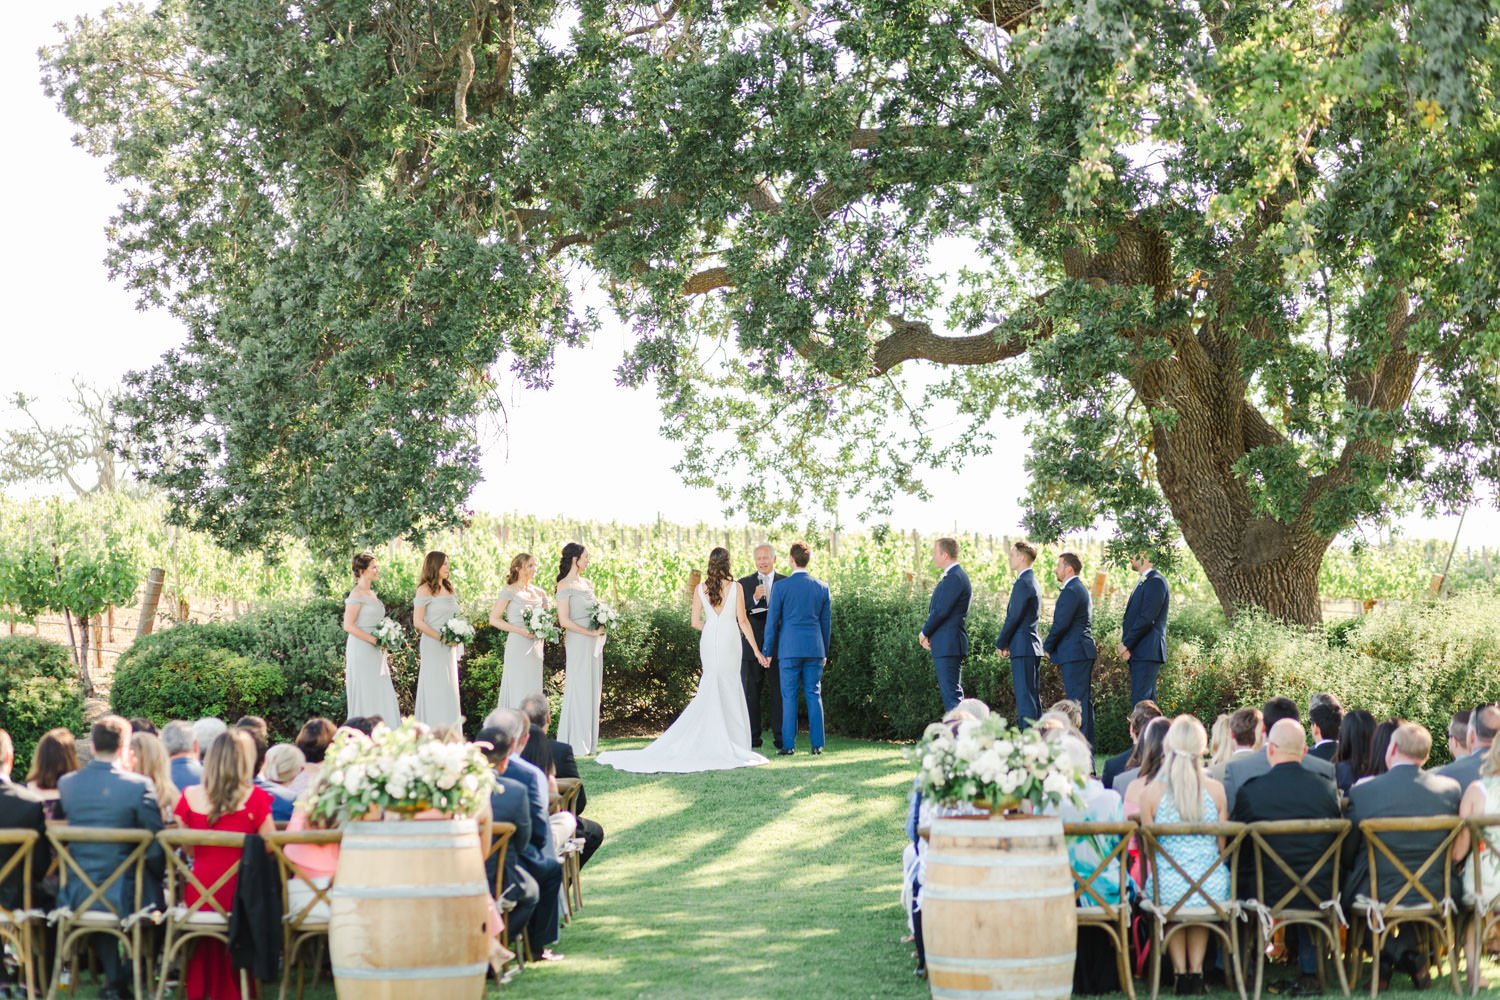 Gainey Vineyards wedding ceremony under the tree, Cavin Elizabeth Photography